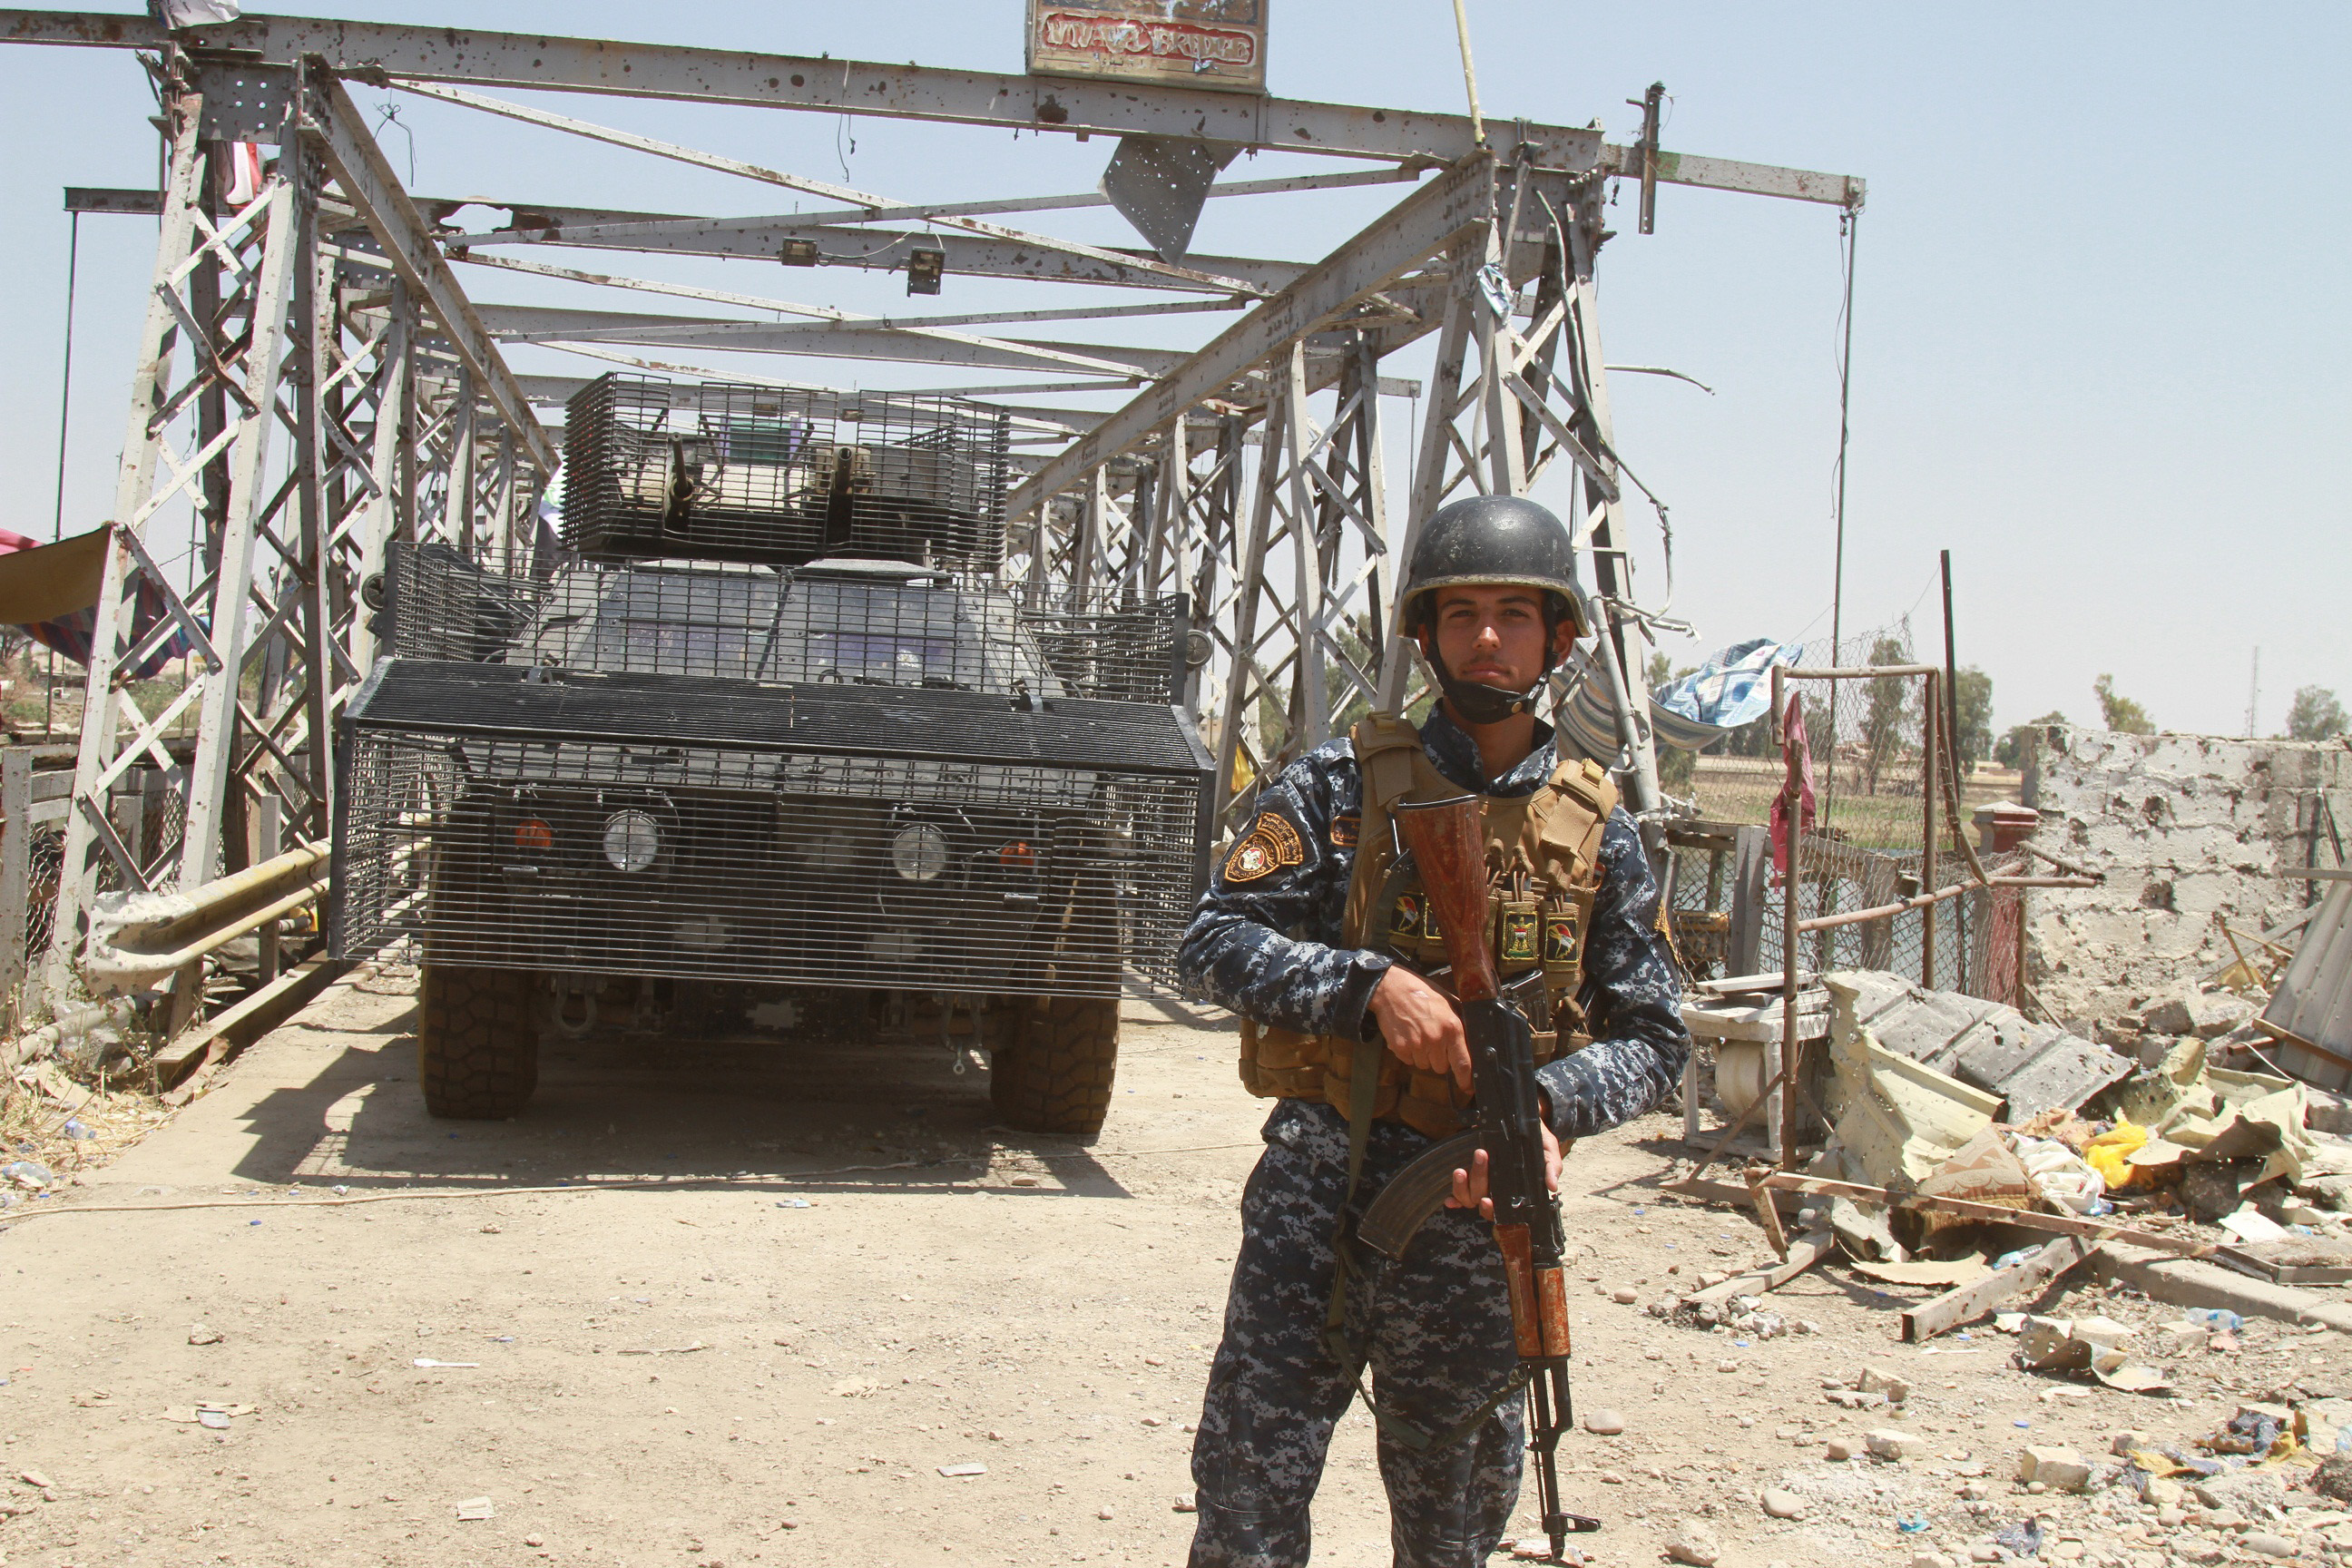 Iraqi forces kills 66 ISIS militants near Mosul city